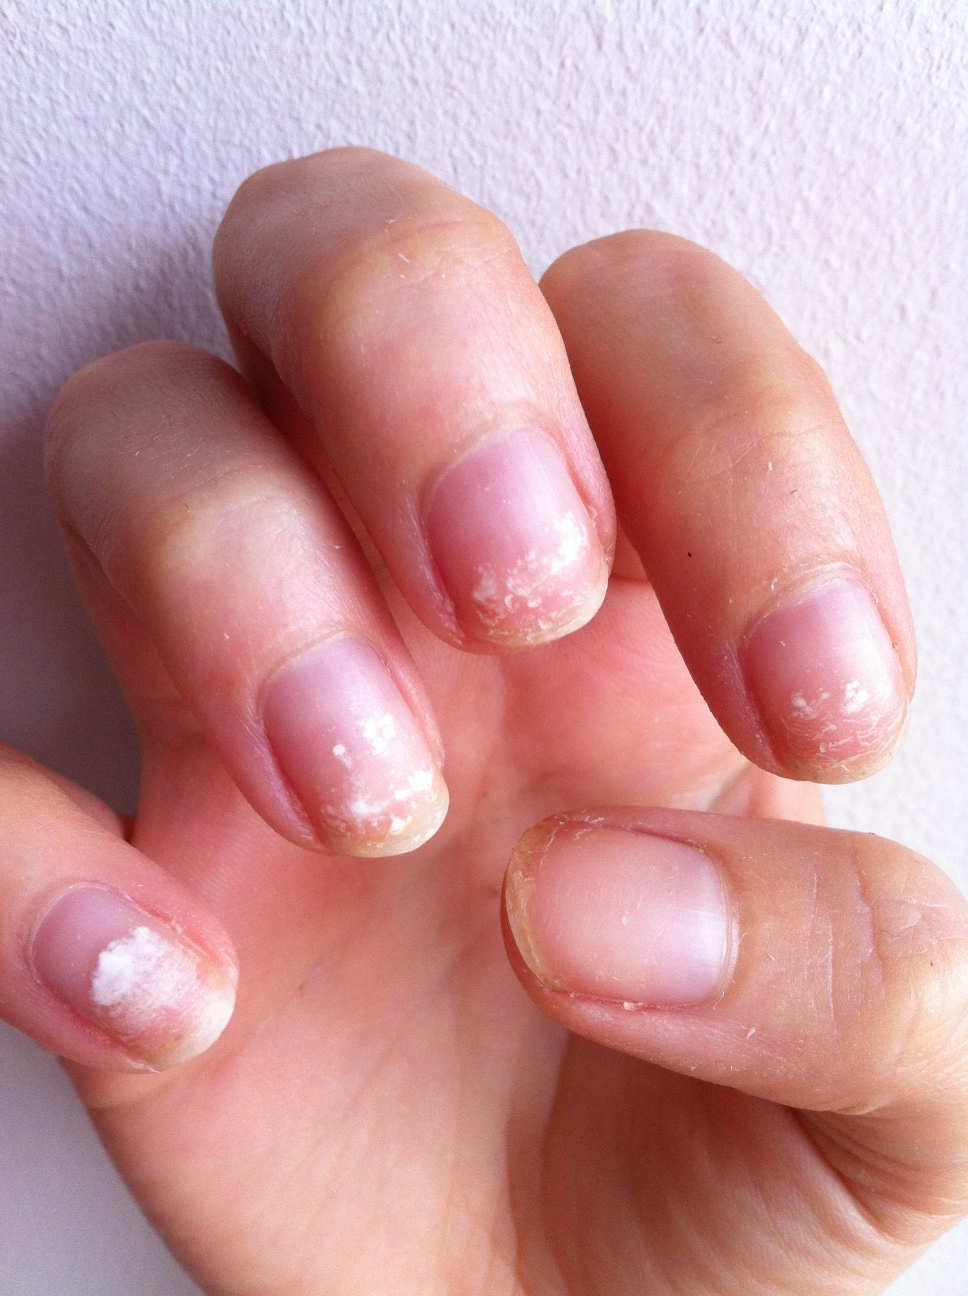 Damaged nails after removing acrylics too roughly.